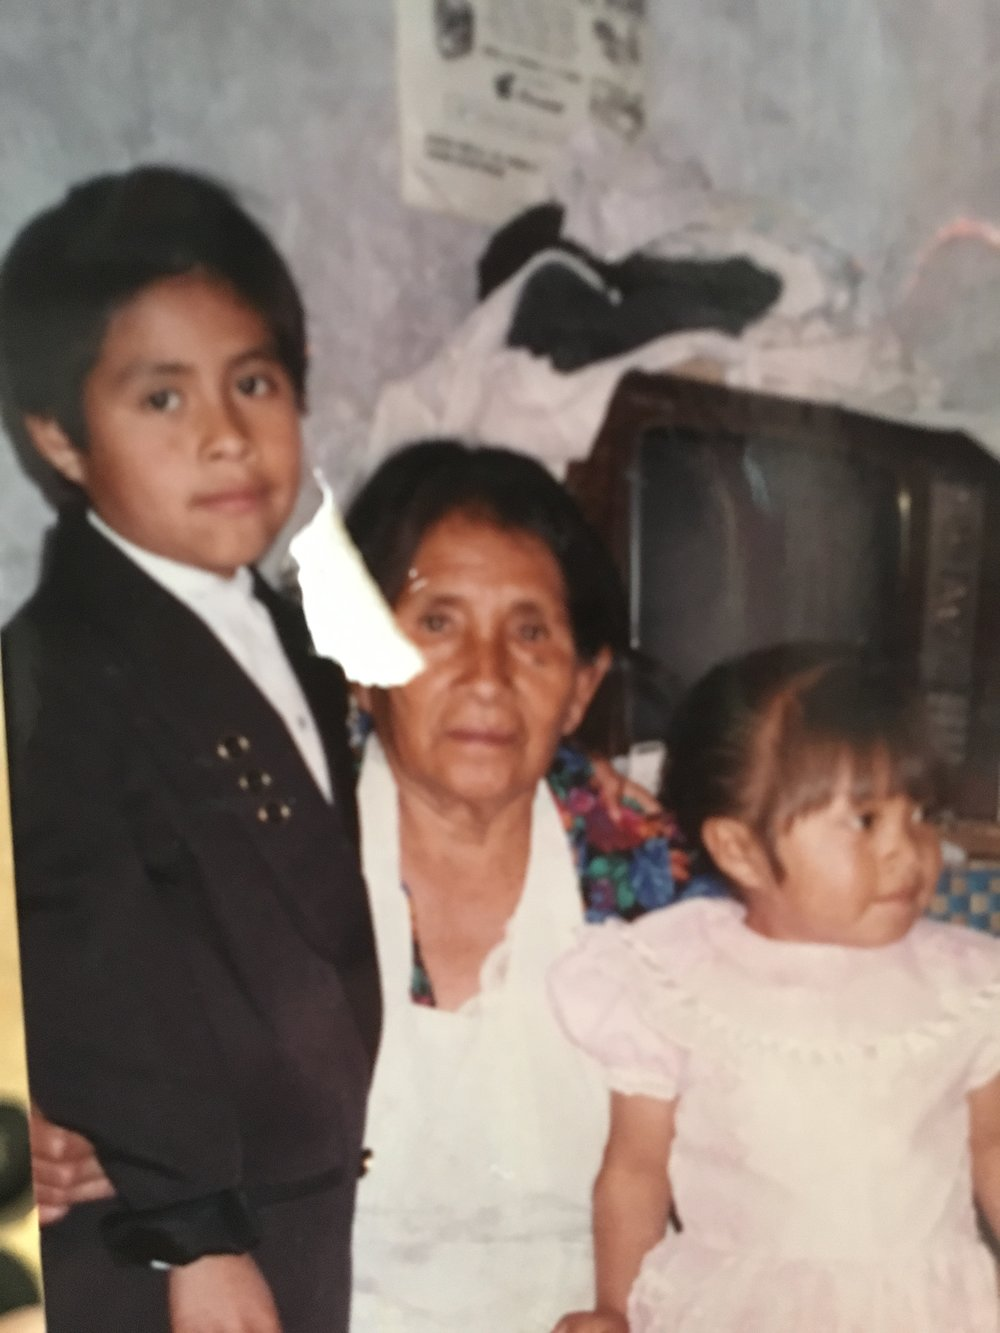 Sonia with her grandmother in Mexico City as a child - she has not seen her in 18 years.